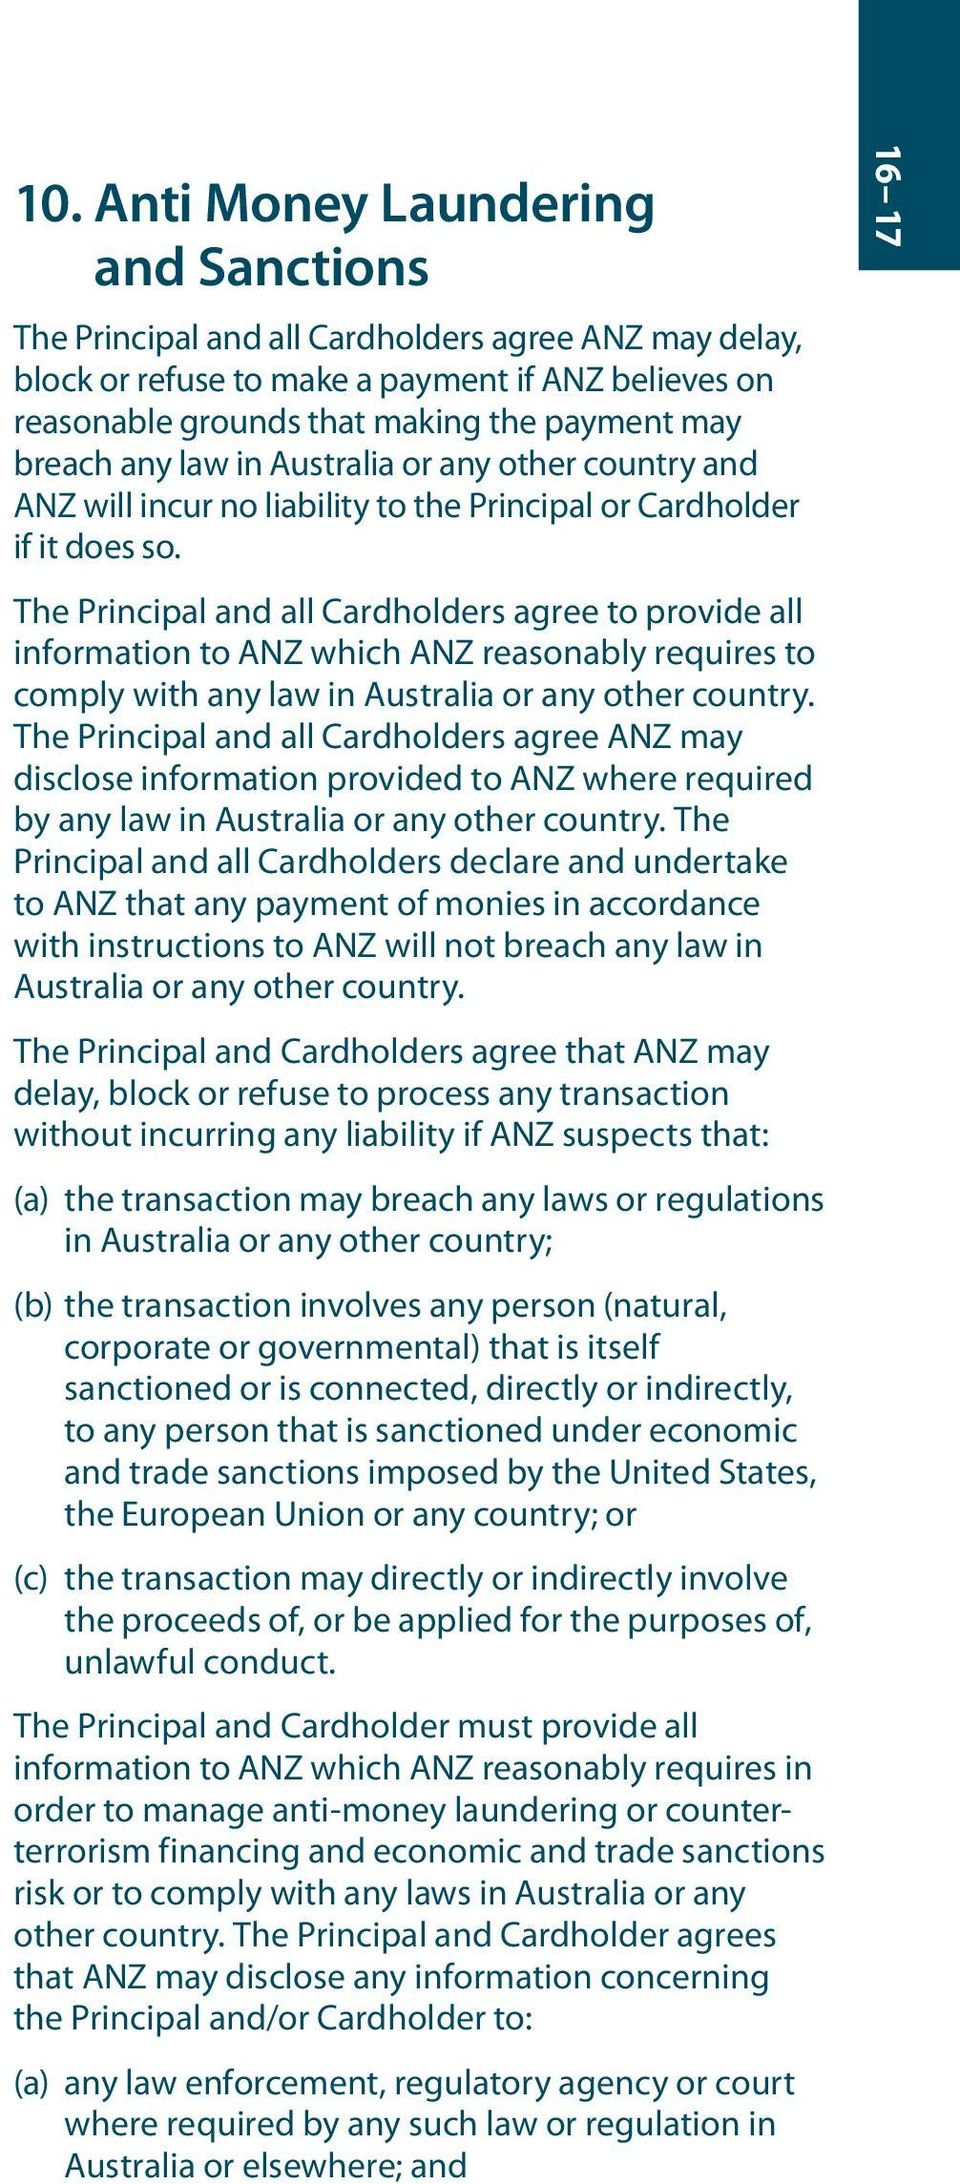 The Principal and all Cardholders agree to provide all information to ANZ which ANZ reasonably requires to comply with any law in Australia or any other country.